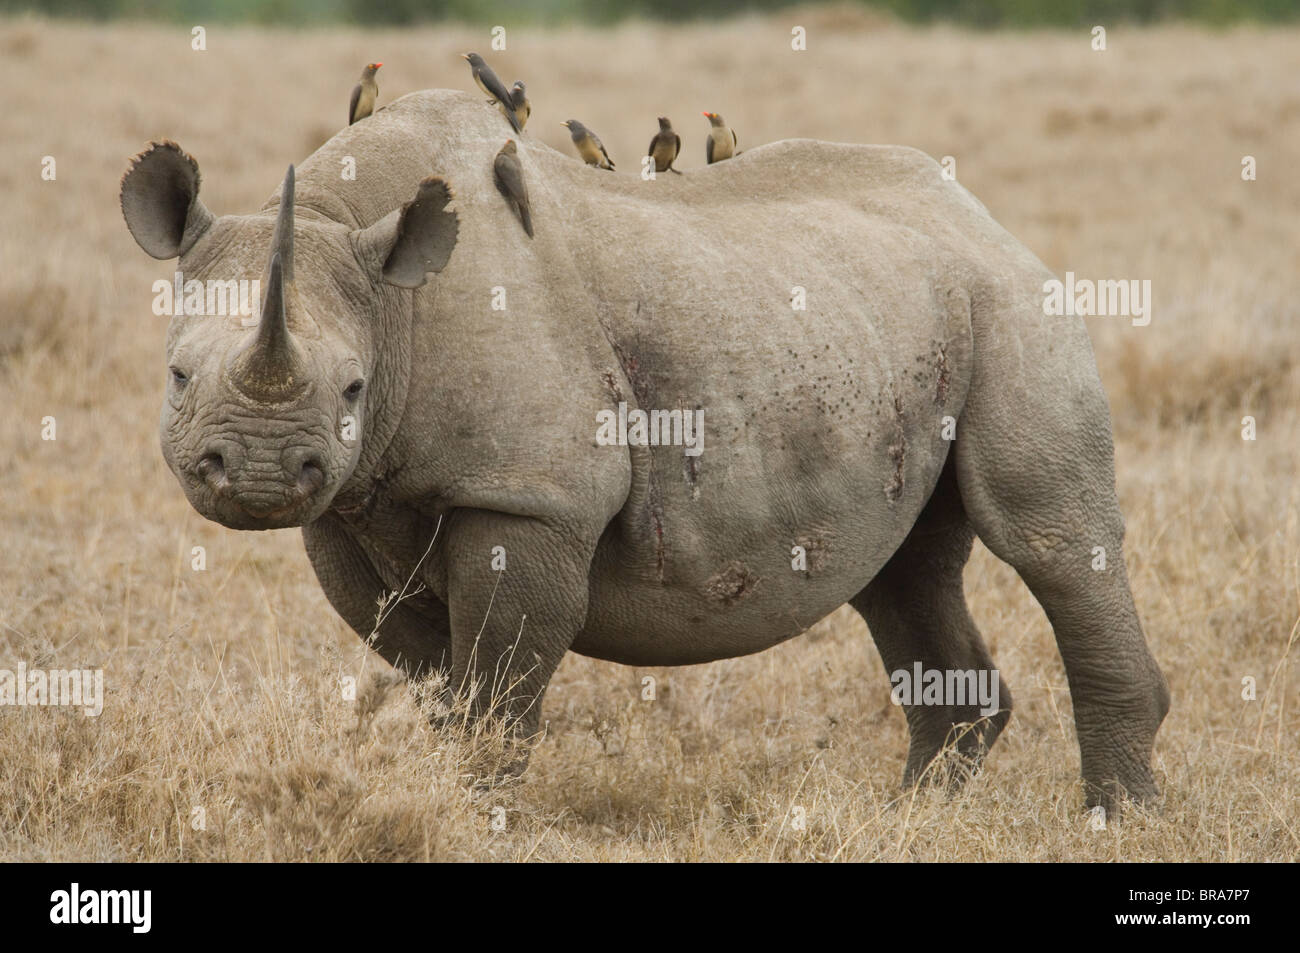 oxpeckers and rhinos relationship memes